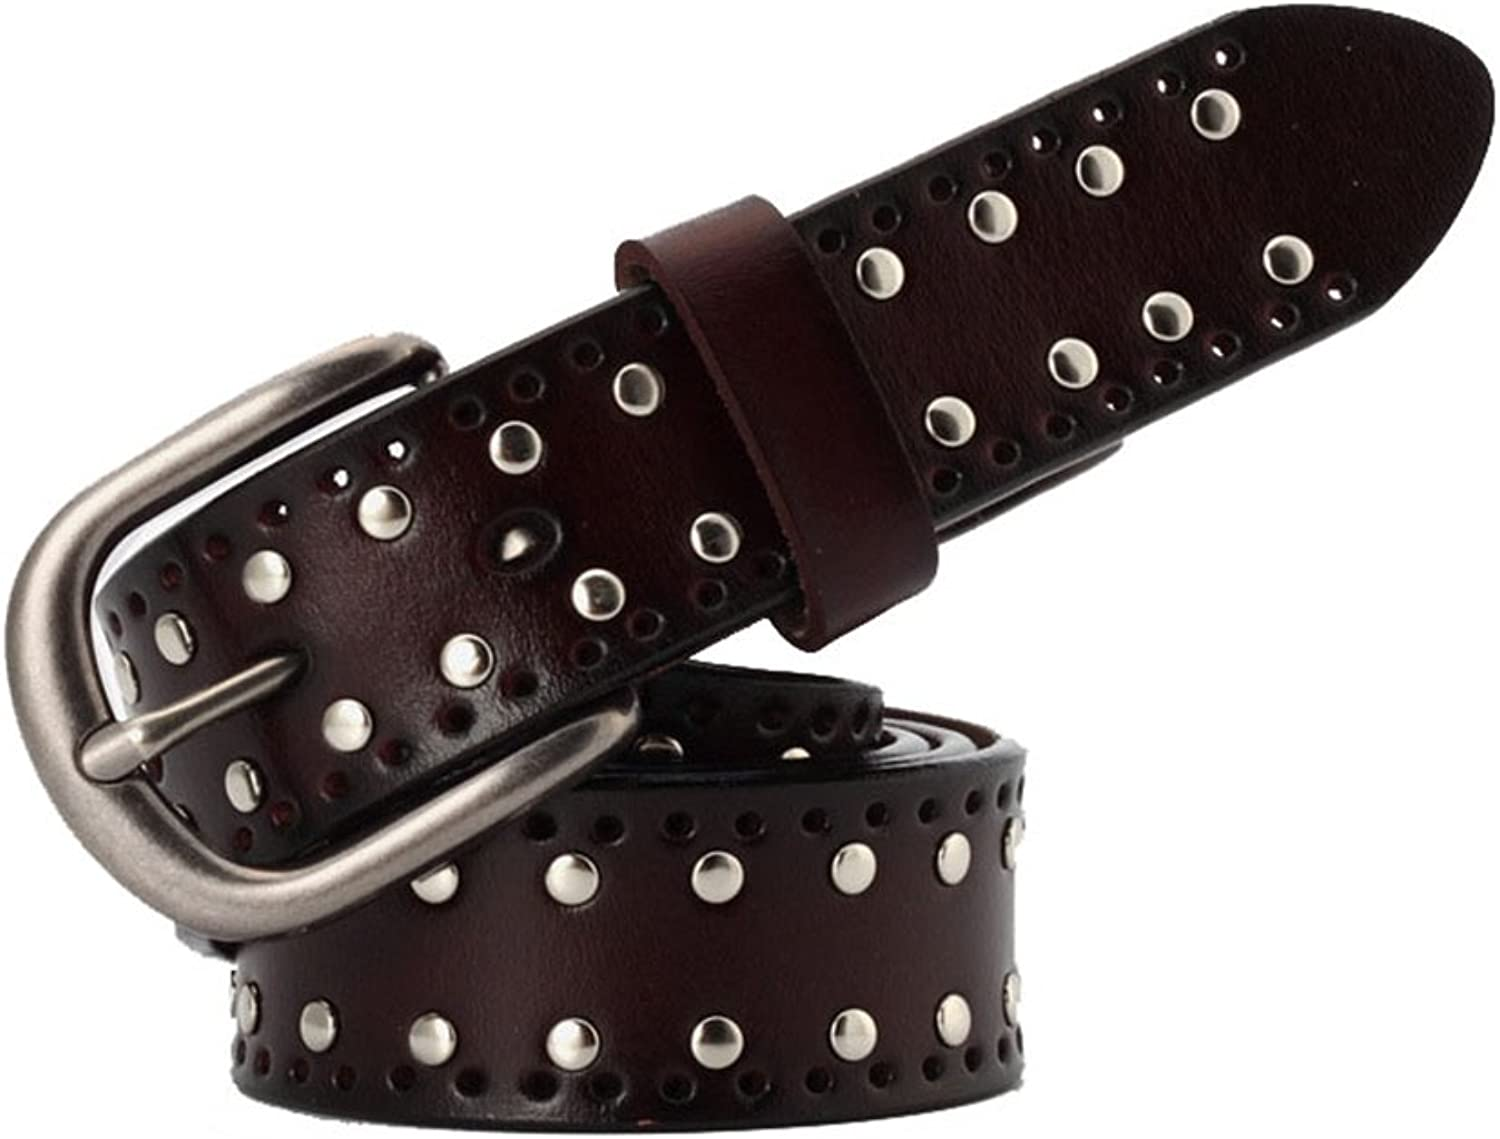 Women's Belt Leather Simple Pure Leather Lady's BeltPersonality Rivets for Trousers Jeans Pants Dress